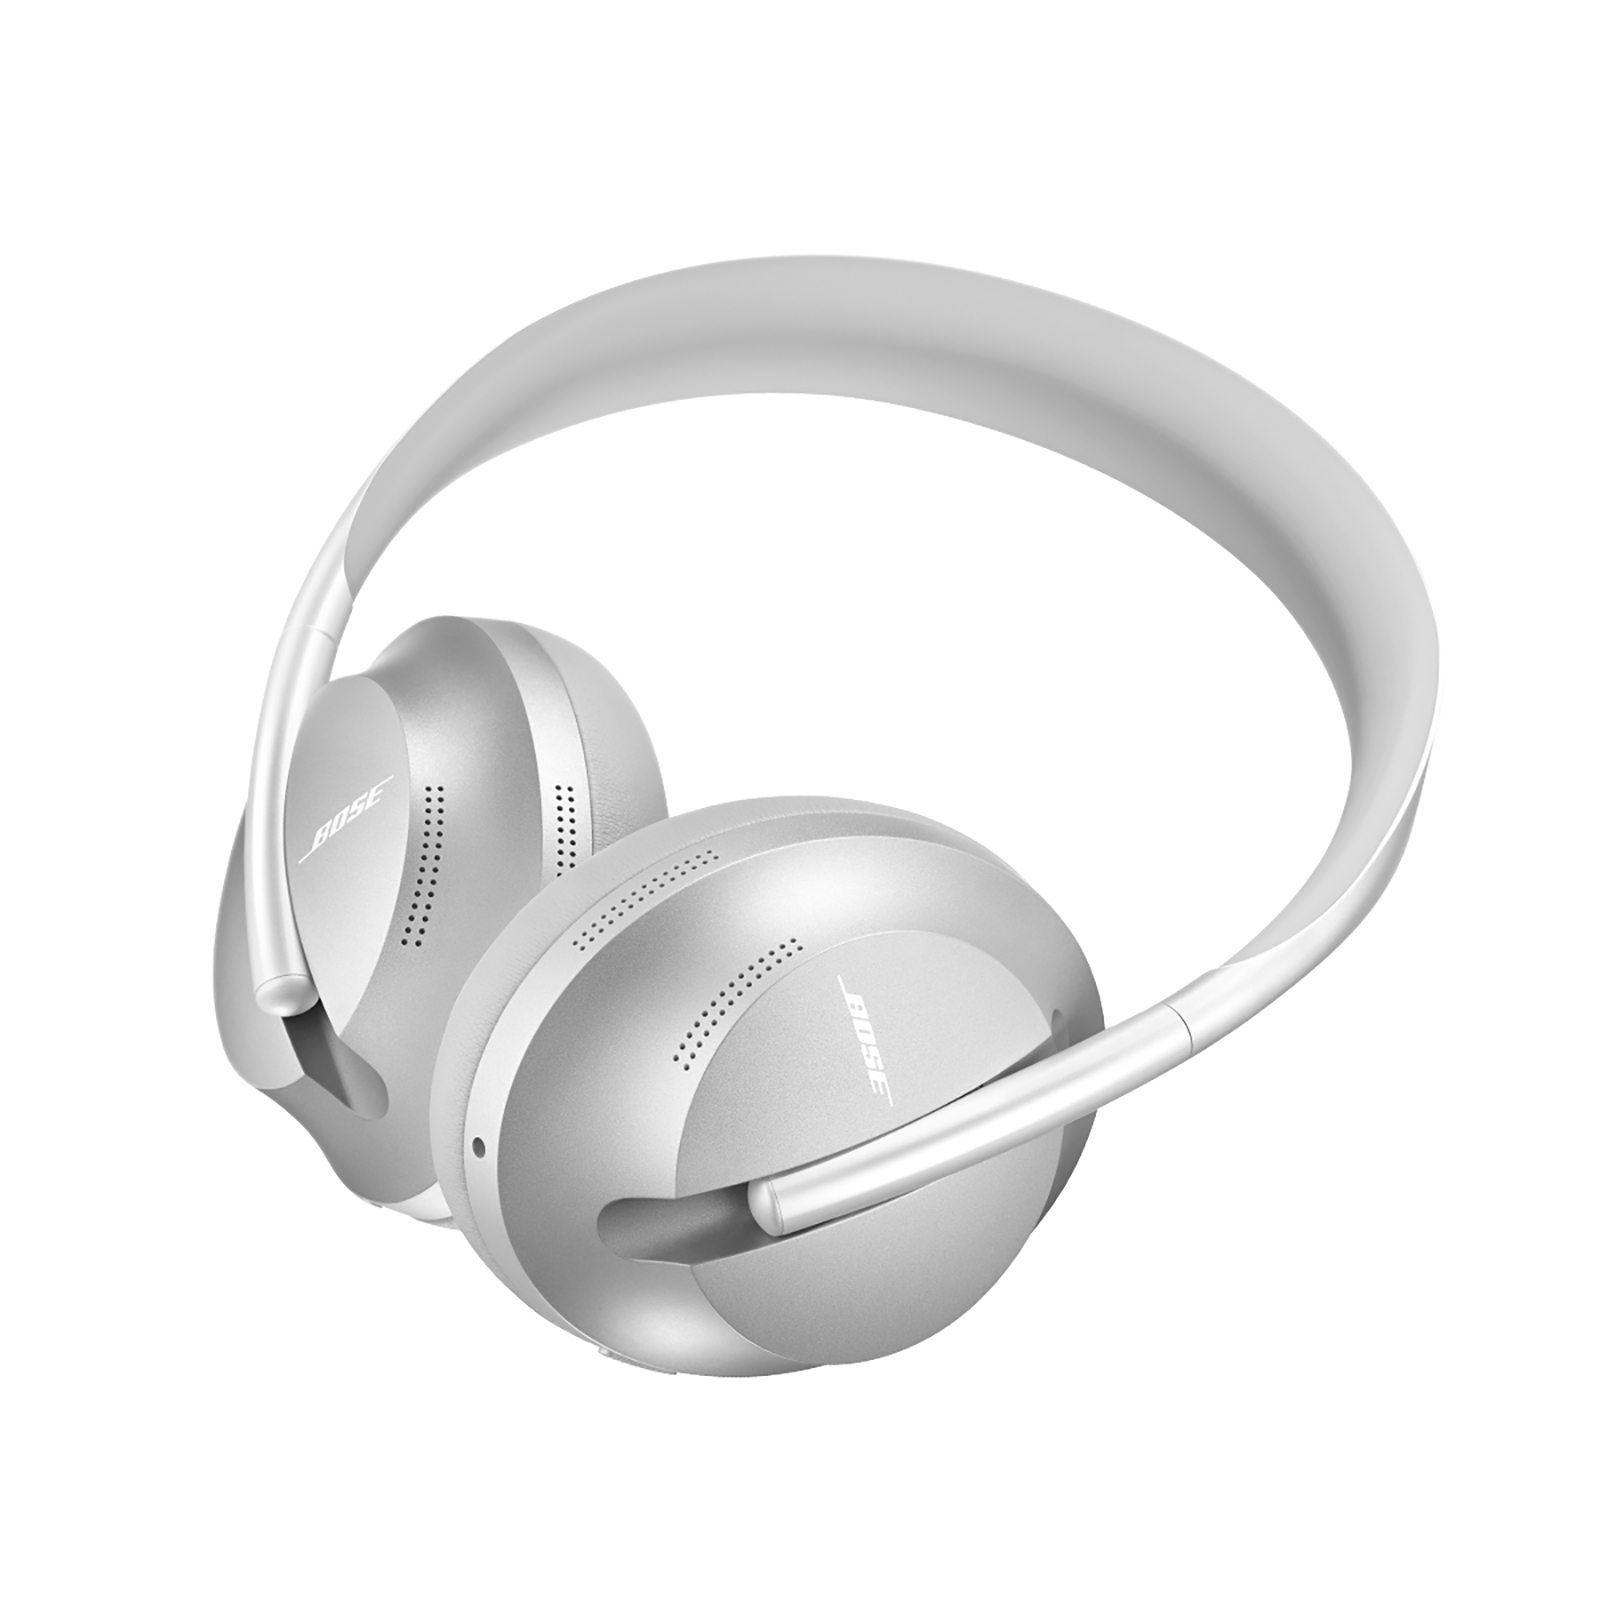 Bose Noise Cancelling Bluetooth Headphones (700, Sliver Luxe)_1